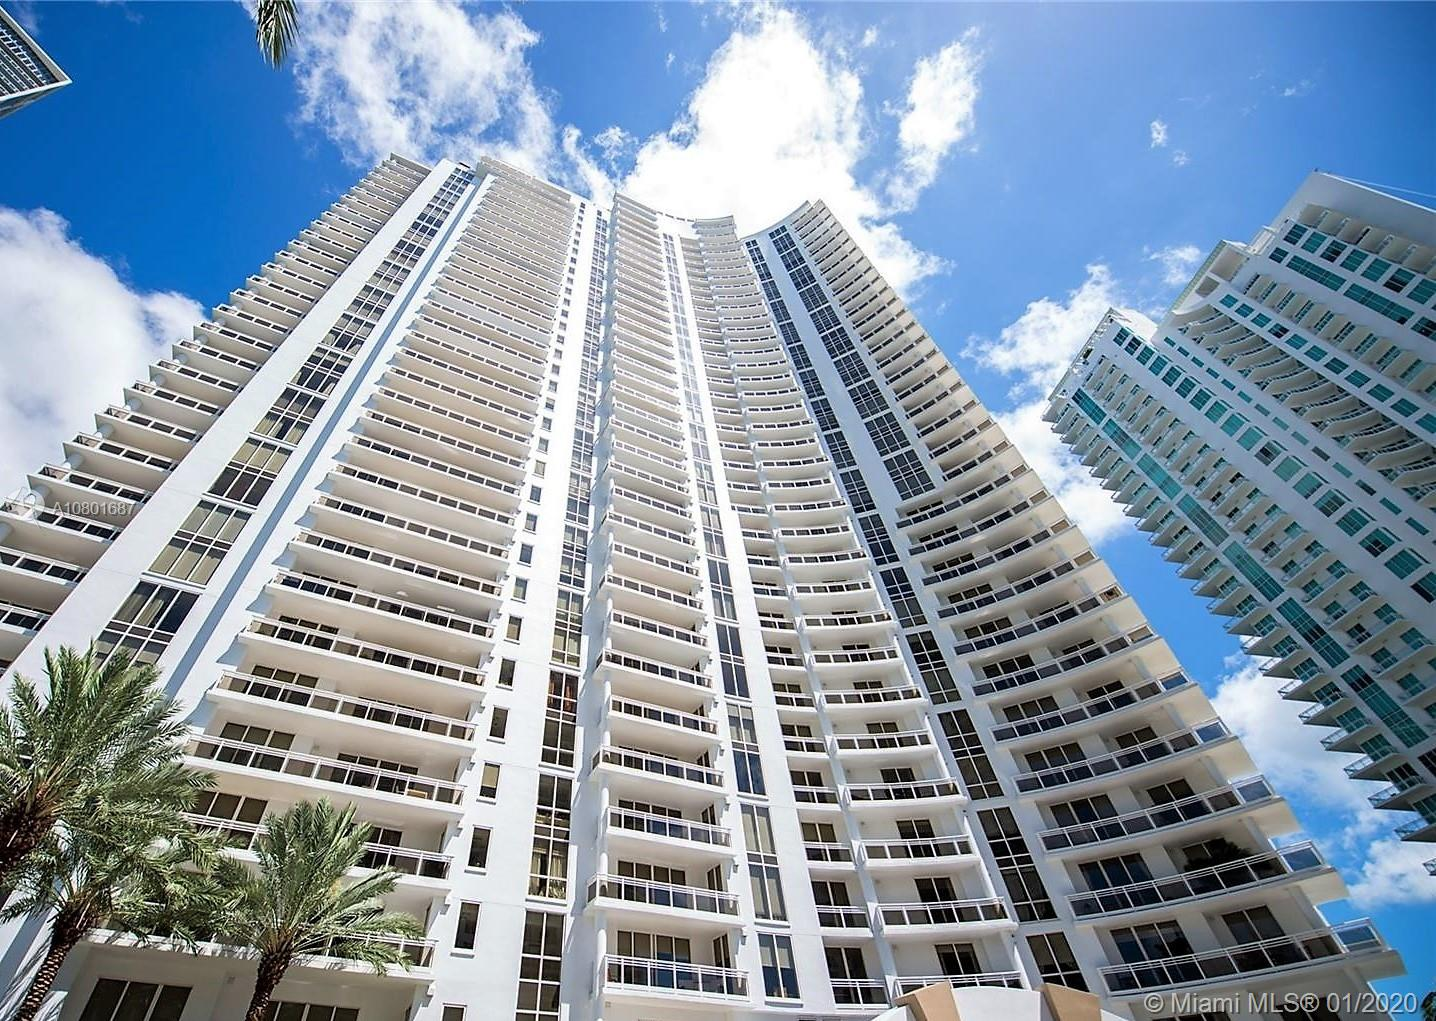 Beautiful corner unit with amazing bay, ocean, city, Miami river & skyline views in the unique and exclusive Brickell key island. Spaciously design 3 bedrooms 3.5 baths with tons of natural light. Marble floors, high ceilings, top of the line stainless steel appliances. Carbonell offers great amenities Swimming Pool, State of the Art Fitness Center, Sauna, Tennis & Racquetball Court, BBQ Area, Kids Playroom, 24 hrs concierge, security & valet service. Private walking, jogging trail on the gorgeous island. Amazing price for this unit! This is the deal you are looking for!